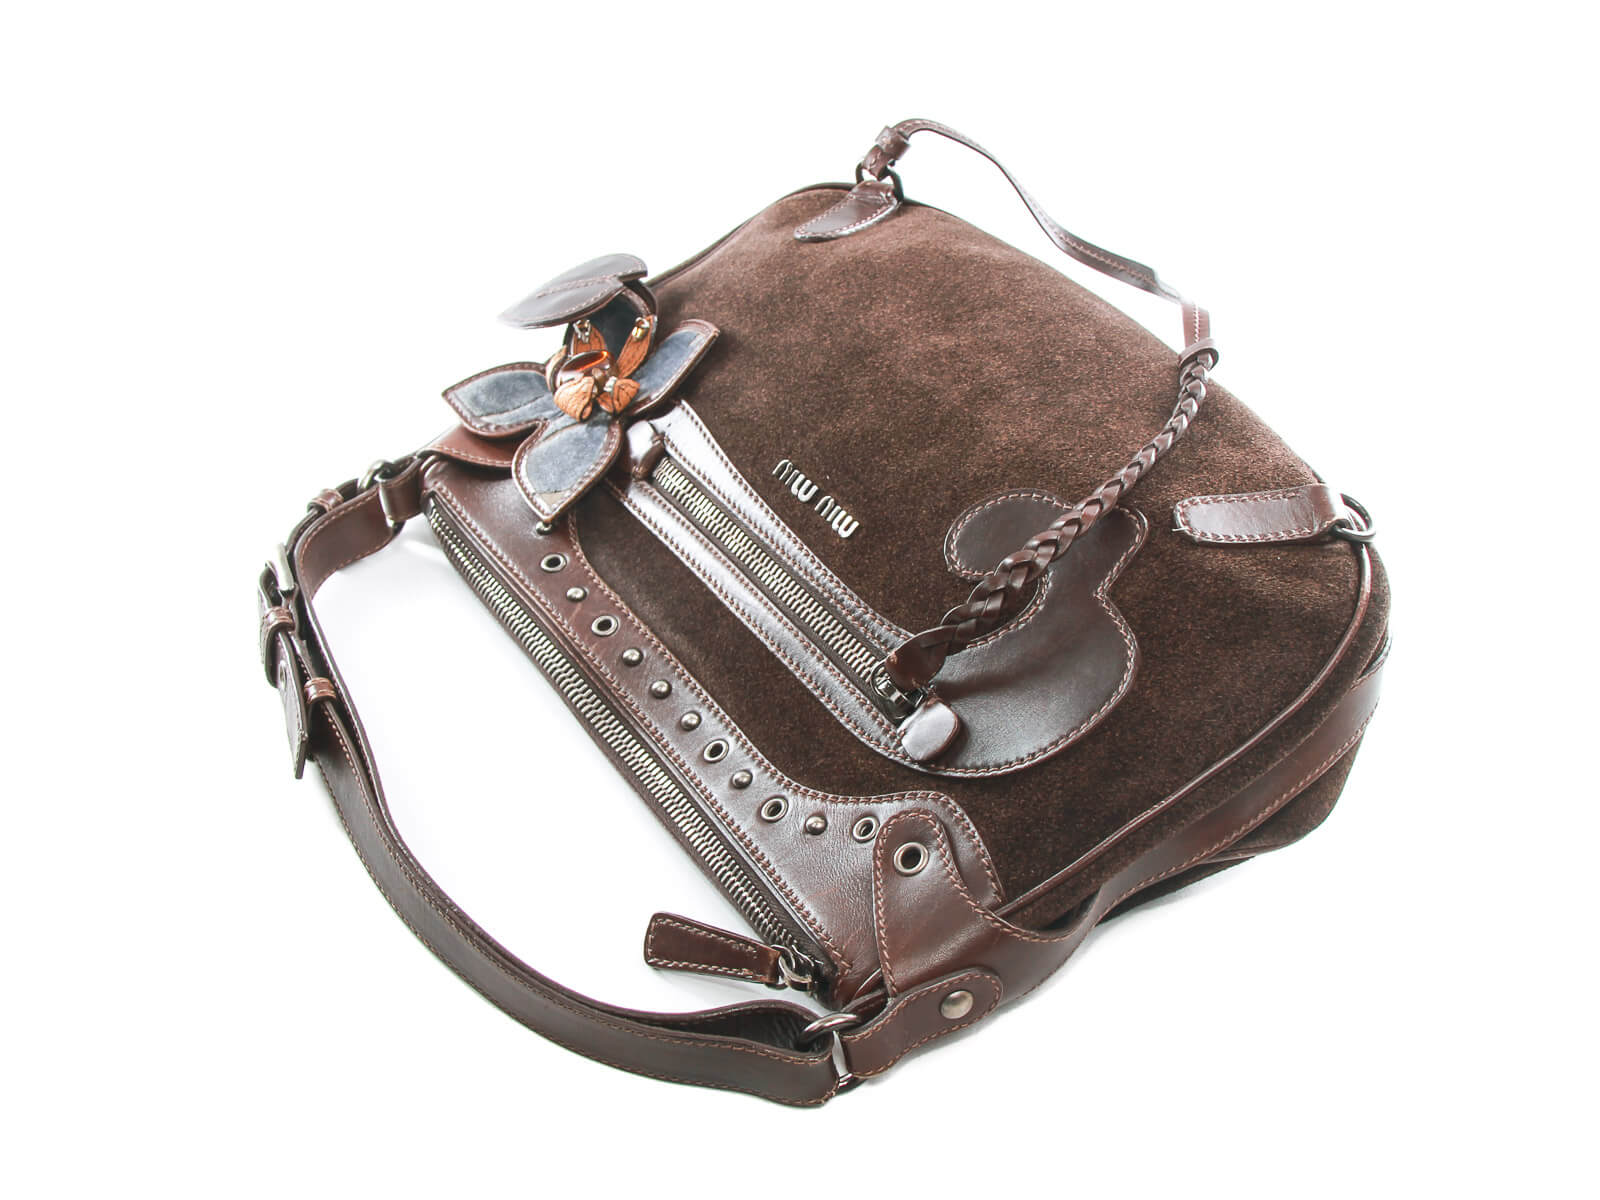 5bad9a446b95 ... Authentic MIU MIU brown suede leather small shoulder bag ...